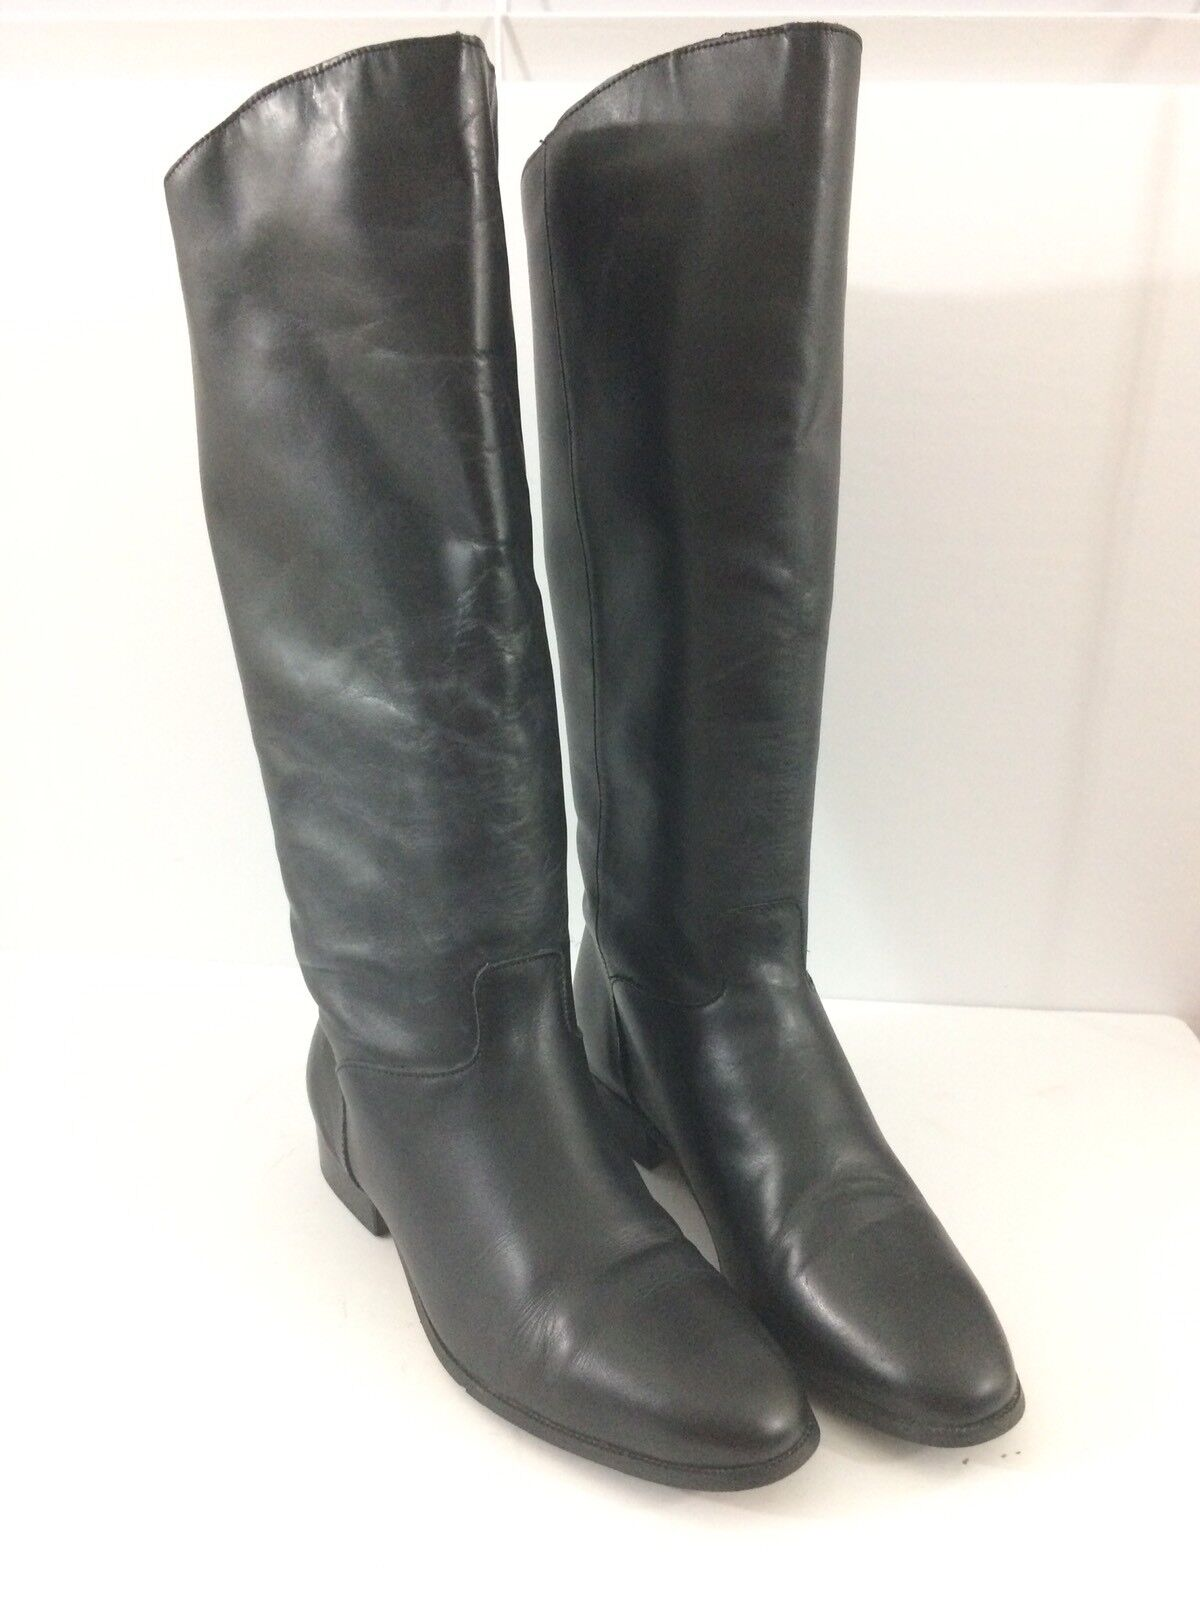 Nauralizer Womens Boots 7.5 M Black Knee Boots Casual Everyday Pull on